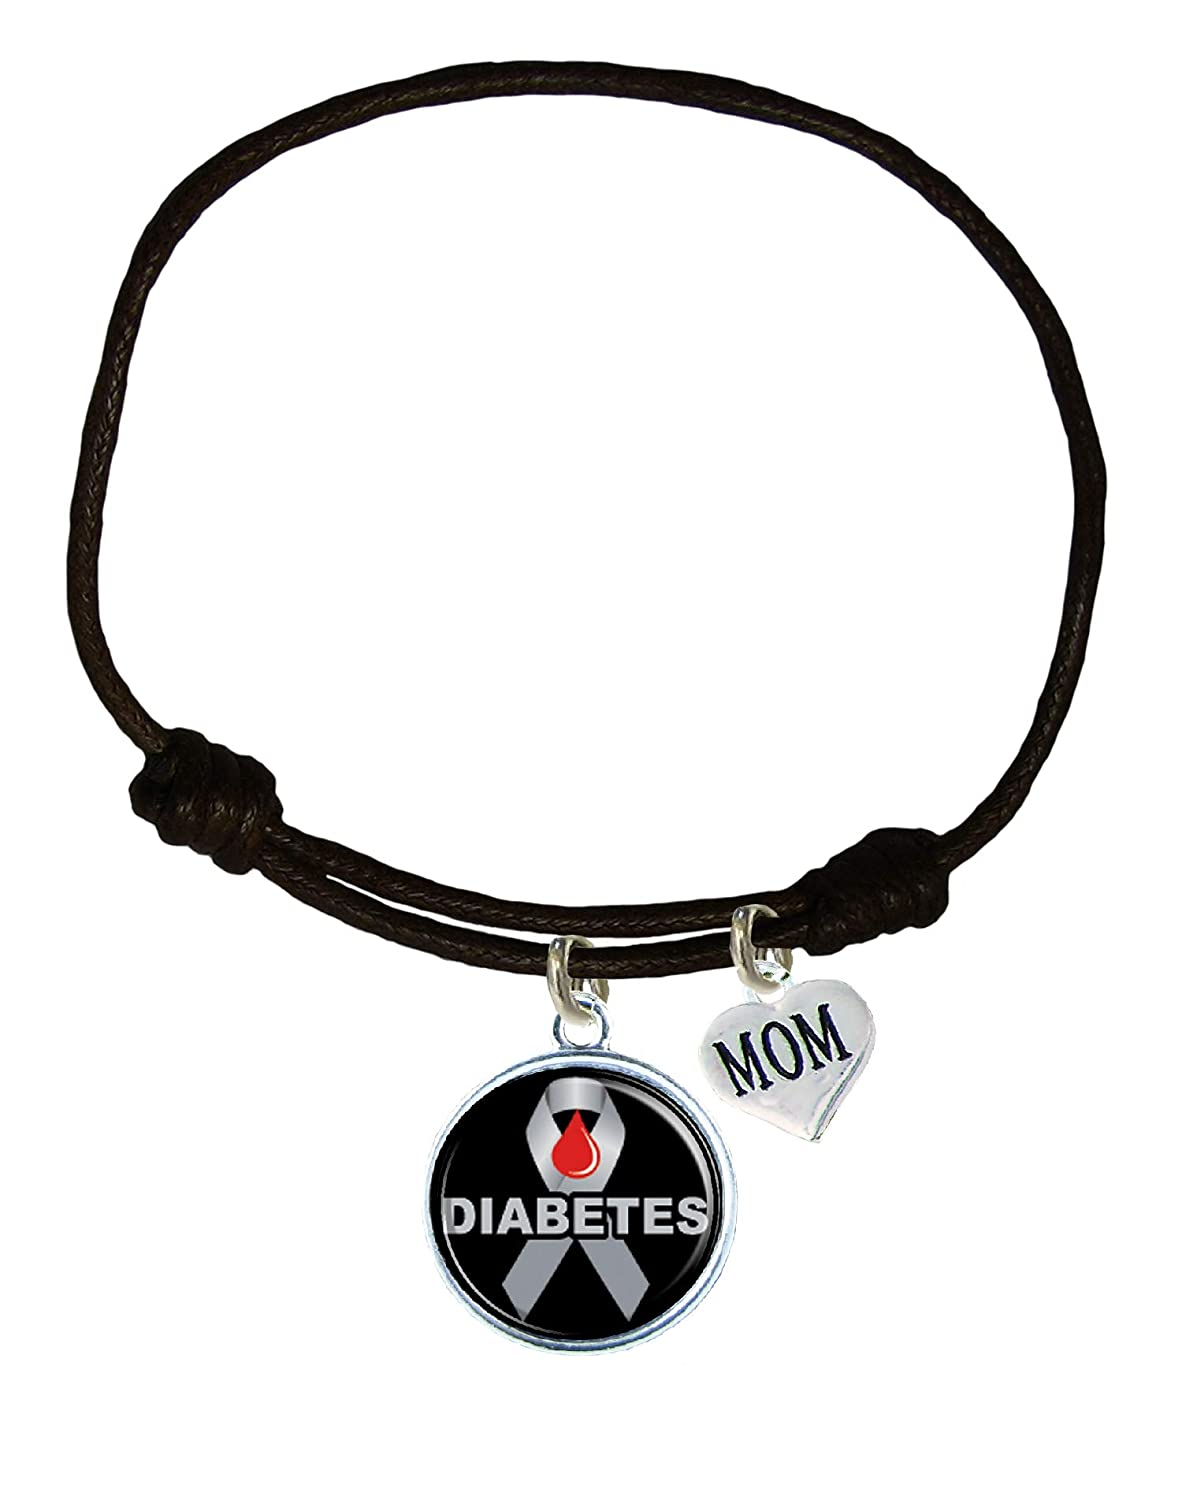 Holly Road Custom Diabetes Awareness Black Leather Unisex Bracelet Jewelry Choose MOM or DAD ONLY